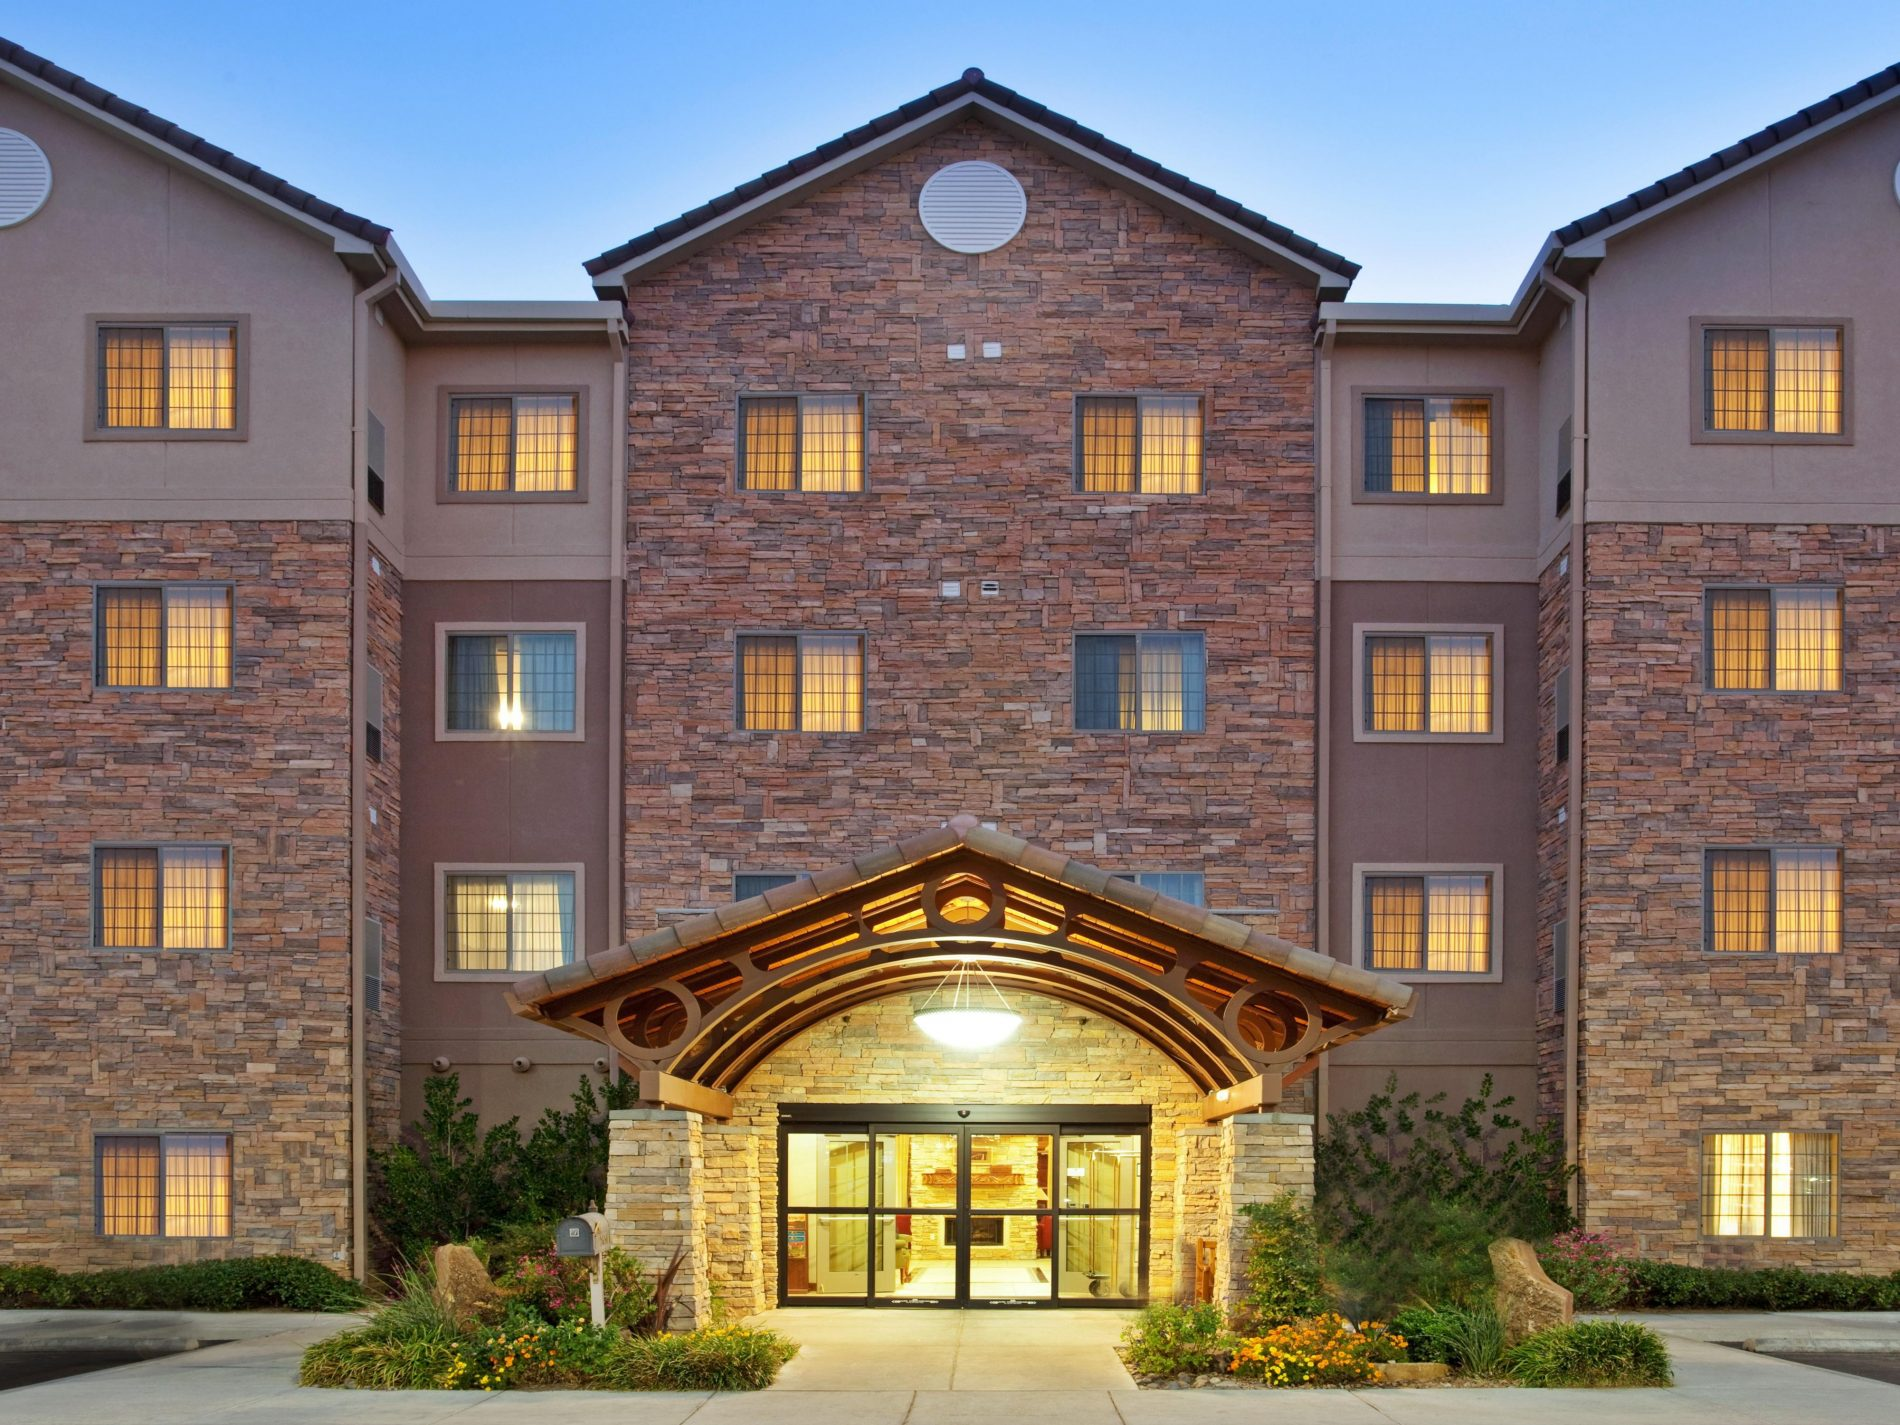 IHG Intercontinental Hotel Groups Staybridge Suites, Las Cruces, New Mexico